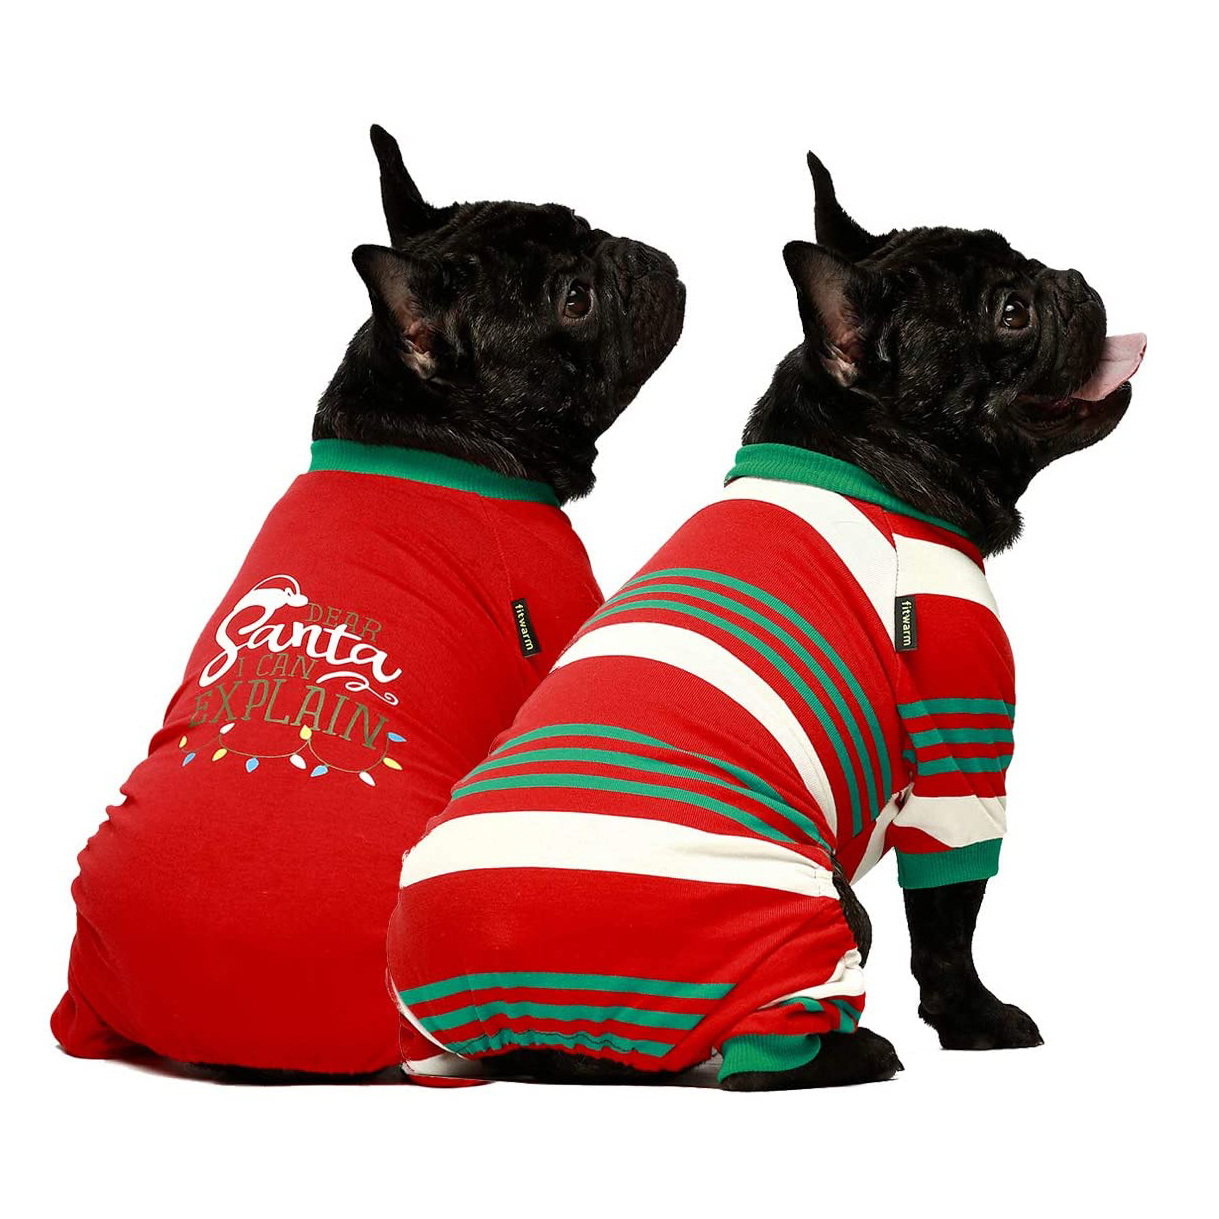 Two dogs wearing Fitwarm Dear Santa, I Can Explain Two-Pack Matching Dogs Christmas Pajamas on a white background